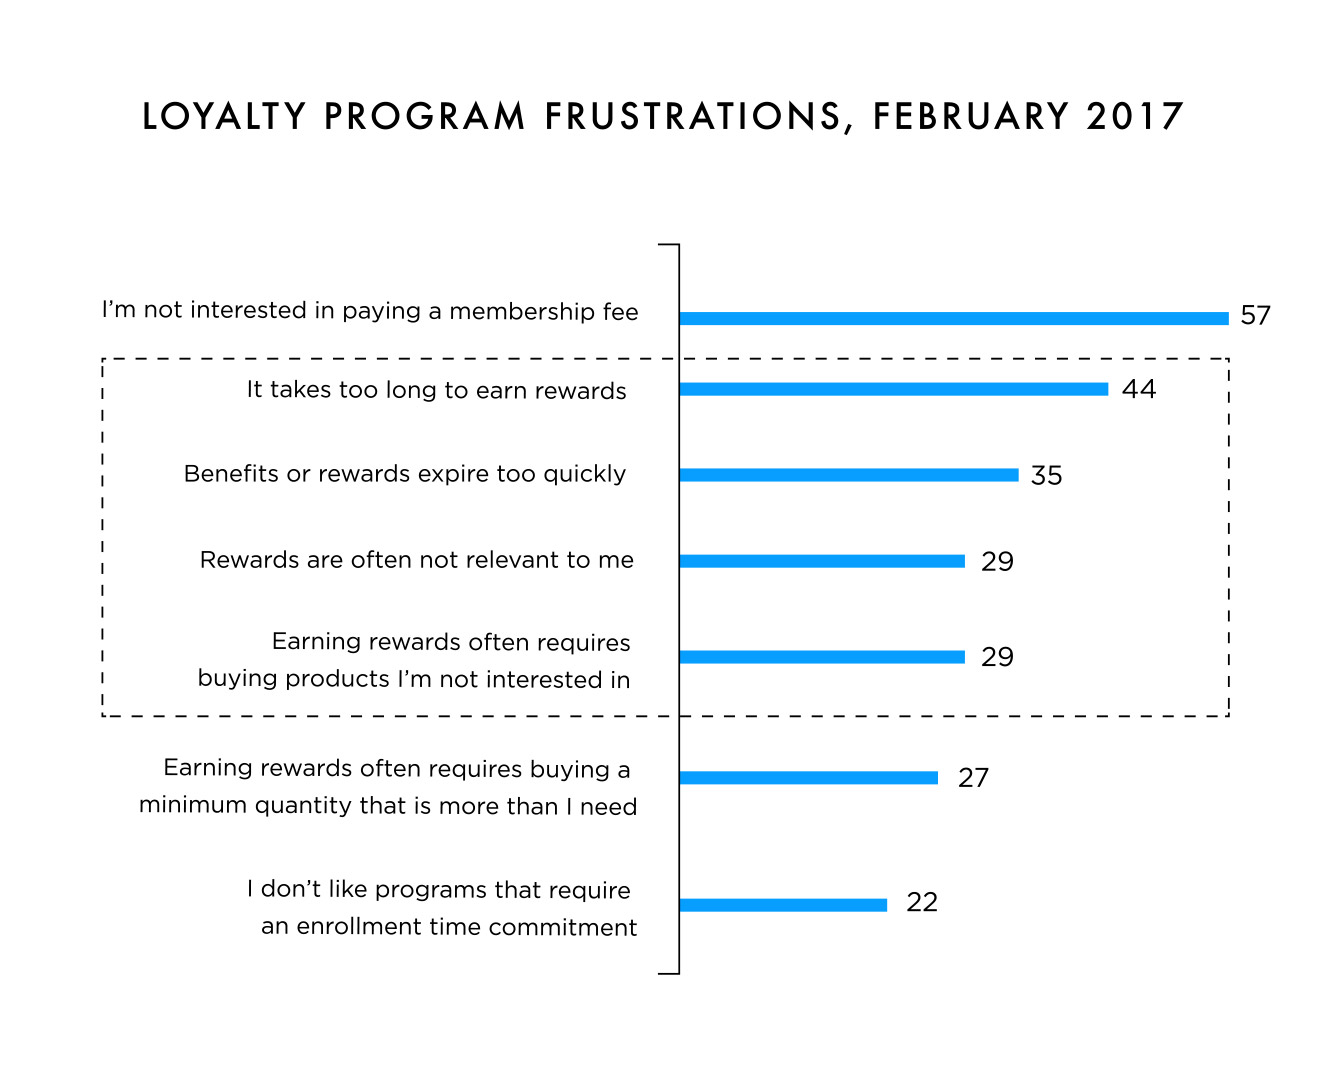 Loyalty program frustrations, February 2017